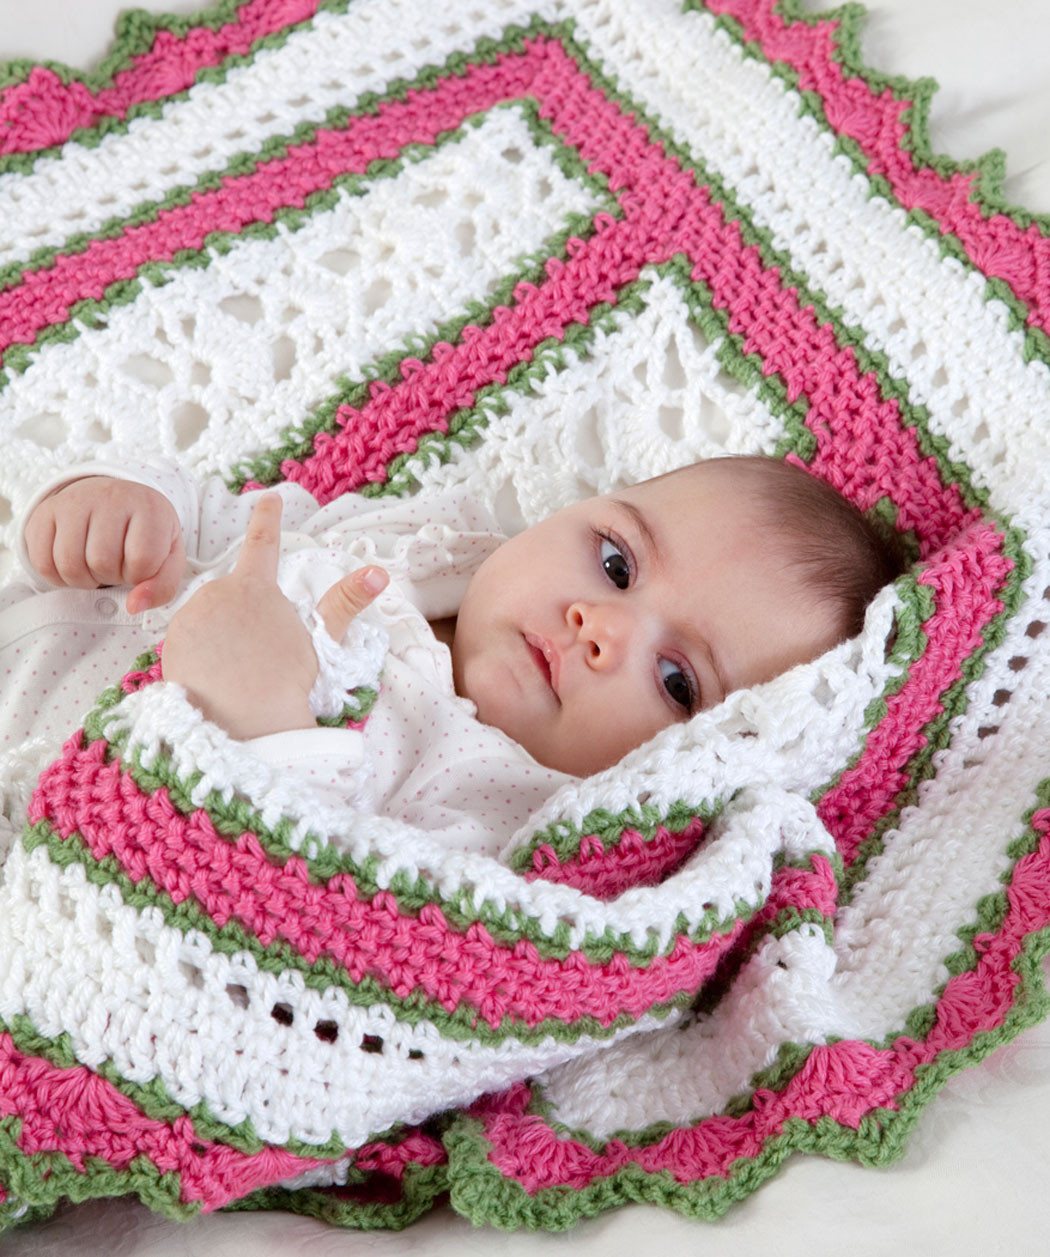 Baby Boy Crochet Blanket Patterns Best Of 10 Beautiful Baby Blanket Free Patterns Of Baby Boy Crochet Blanket Patterns New Free Baby Blanket Crochet Patterns Easy